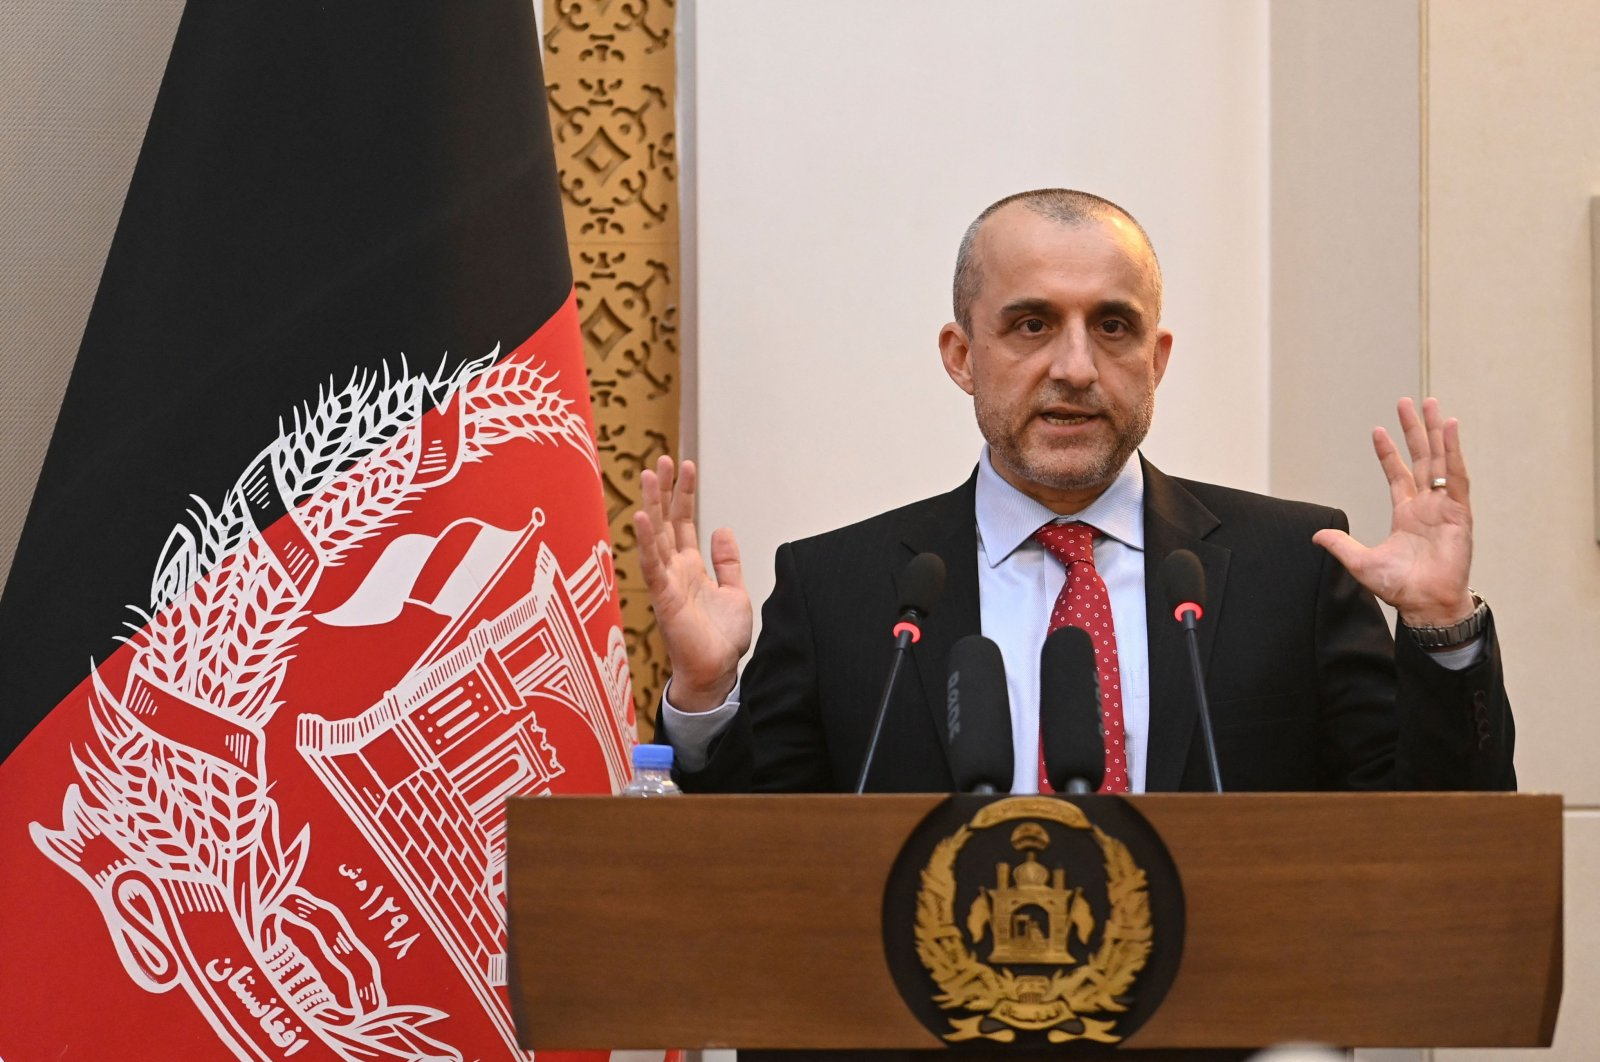 First Vice President of Afghanistan Amrullah Saleh speaks during a function at the Afghan presidential palace in Kabul on August 4, 2021. (AFP File Photo)